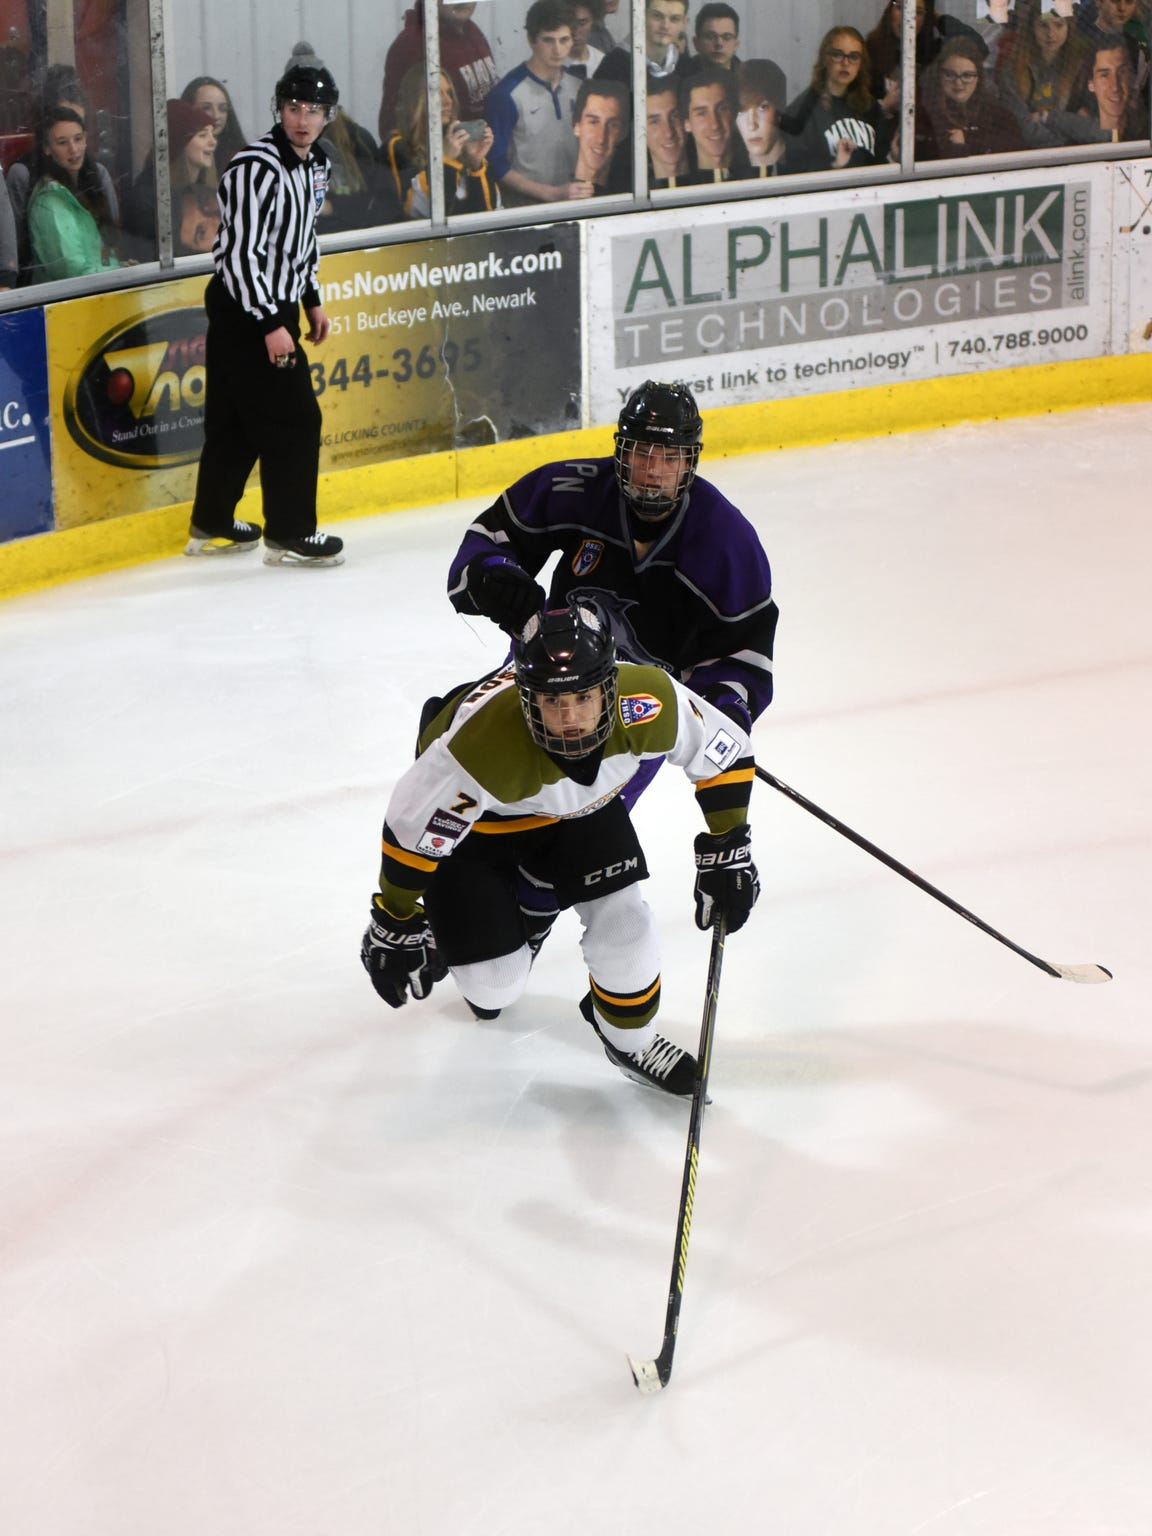 Tri-Valley sophomore Drew Johnson skates away from a defender during the Newark Generals' 5-1 win against the PHA Prowlers on Feb. 7 at Lou and Gib Reese Ice Arena.